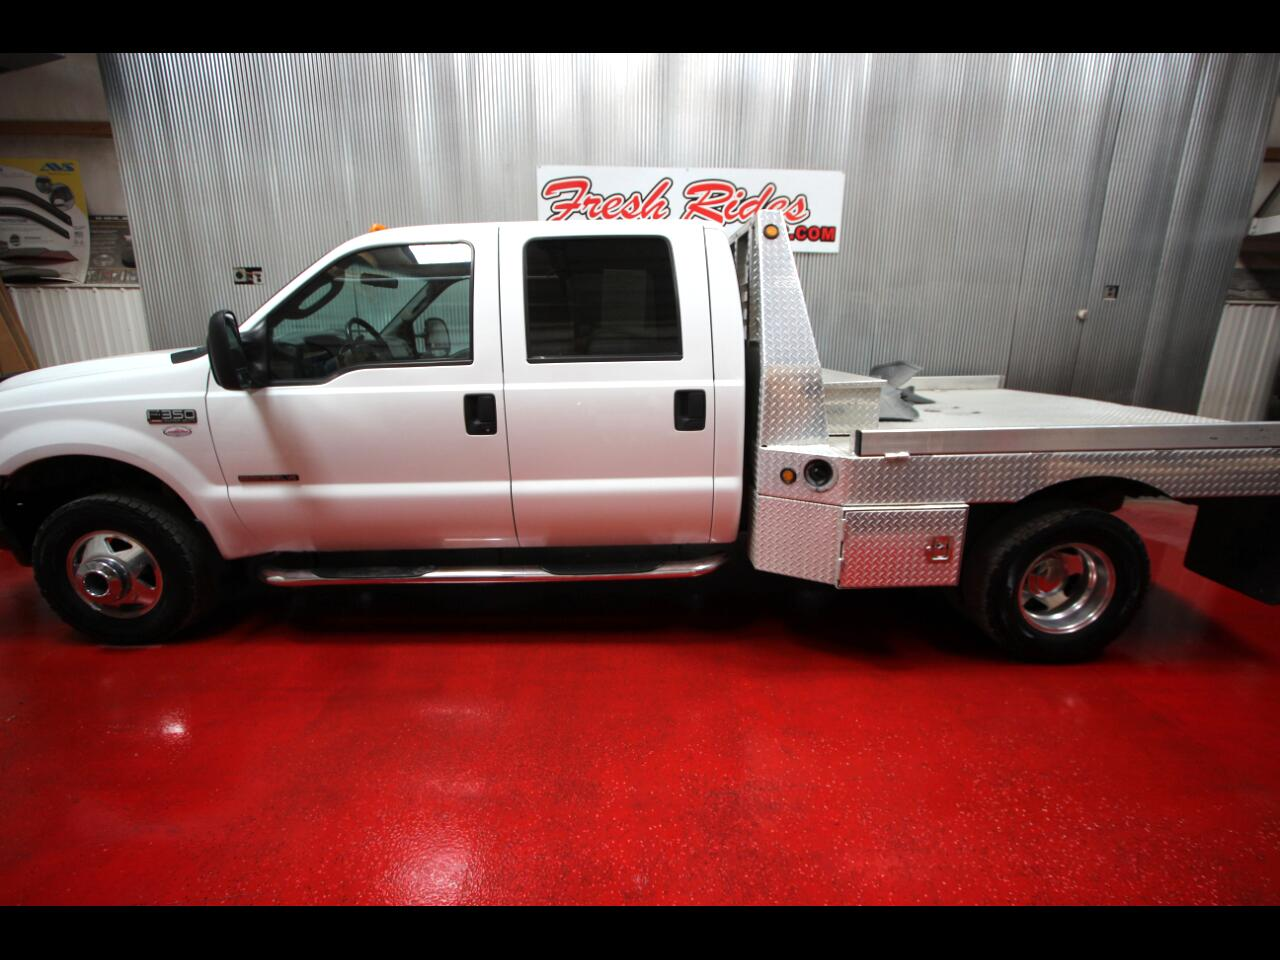 2003 Ford F-350 Crew Cab 4dr 168.4